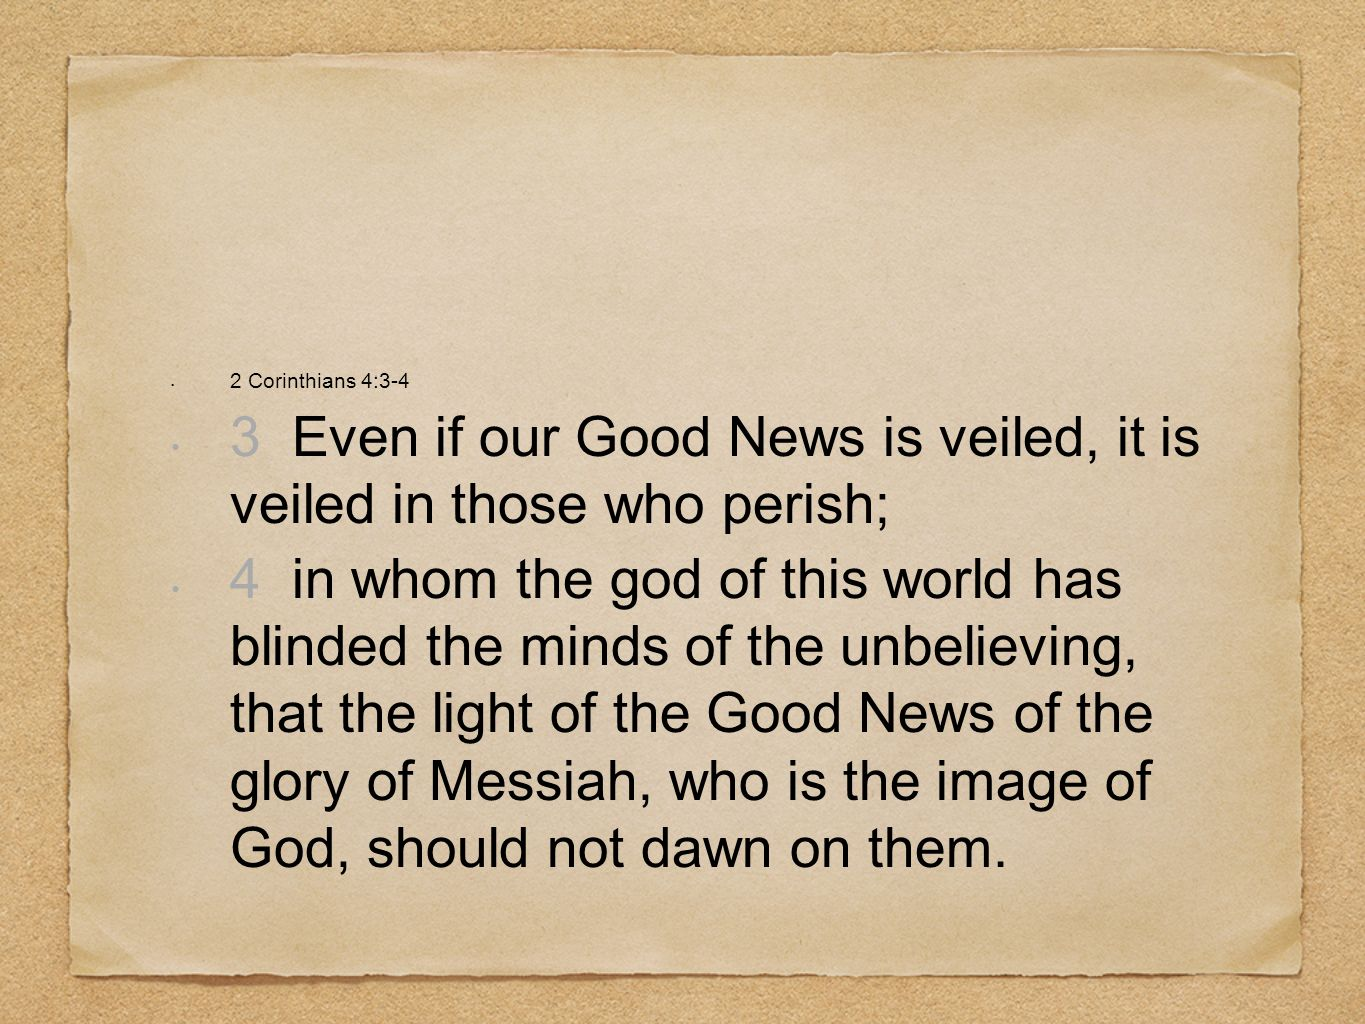 2 Corinthians 4:3-4 3 Even if our Good News is veiled, it is veiled in those who perish; 4 in whom the god of this world has blinded the minds of the unbelieving, that the light of the Good News of the glory of Messiah, who is the image of God, should not dawn on them.